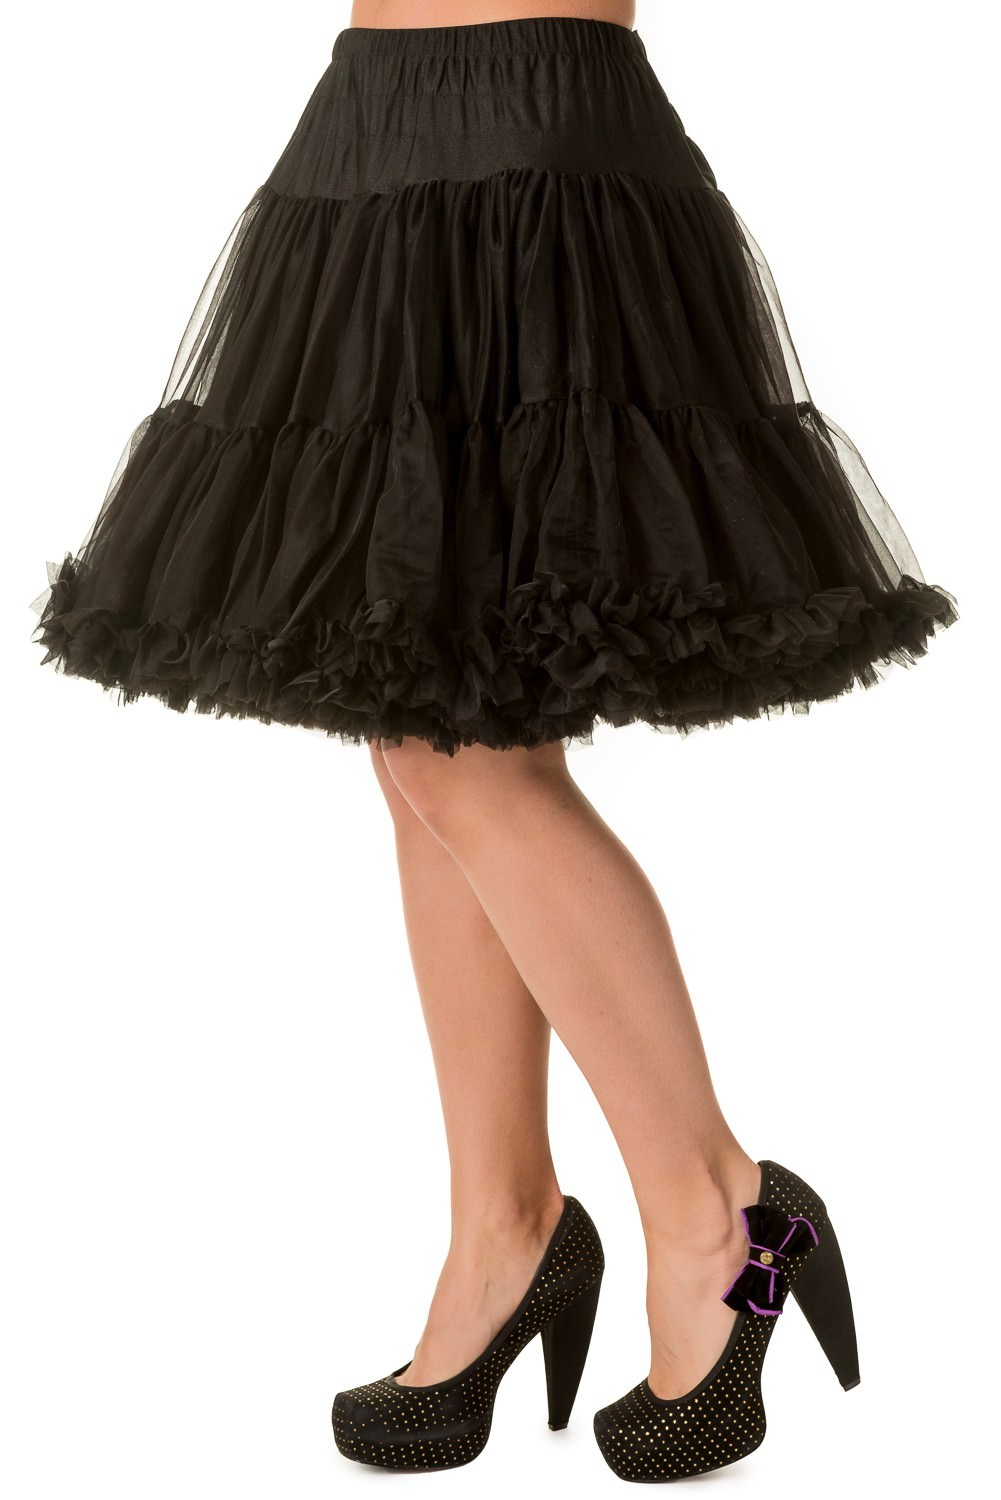 Banned Retro 50s Walkabout Black Petticoat